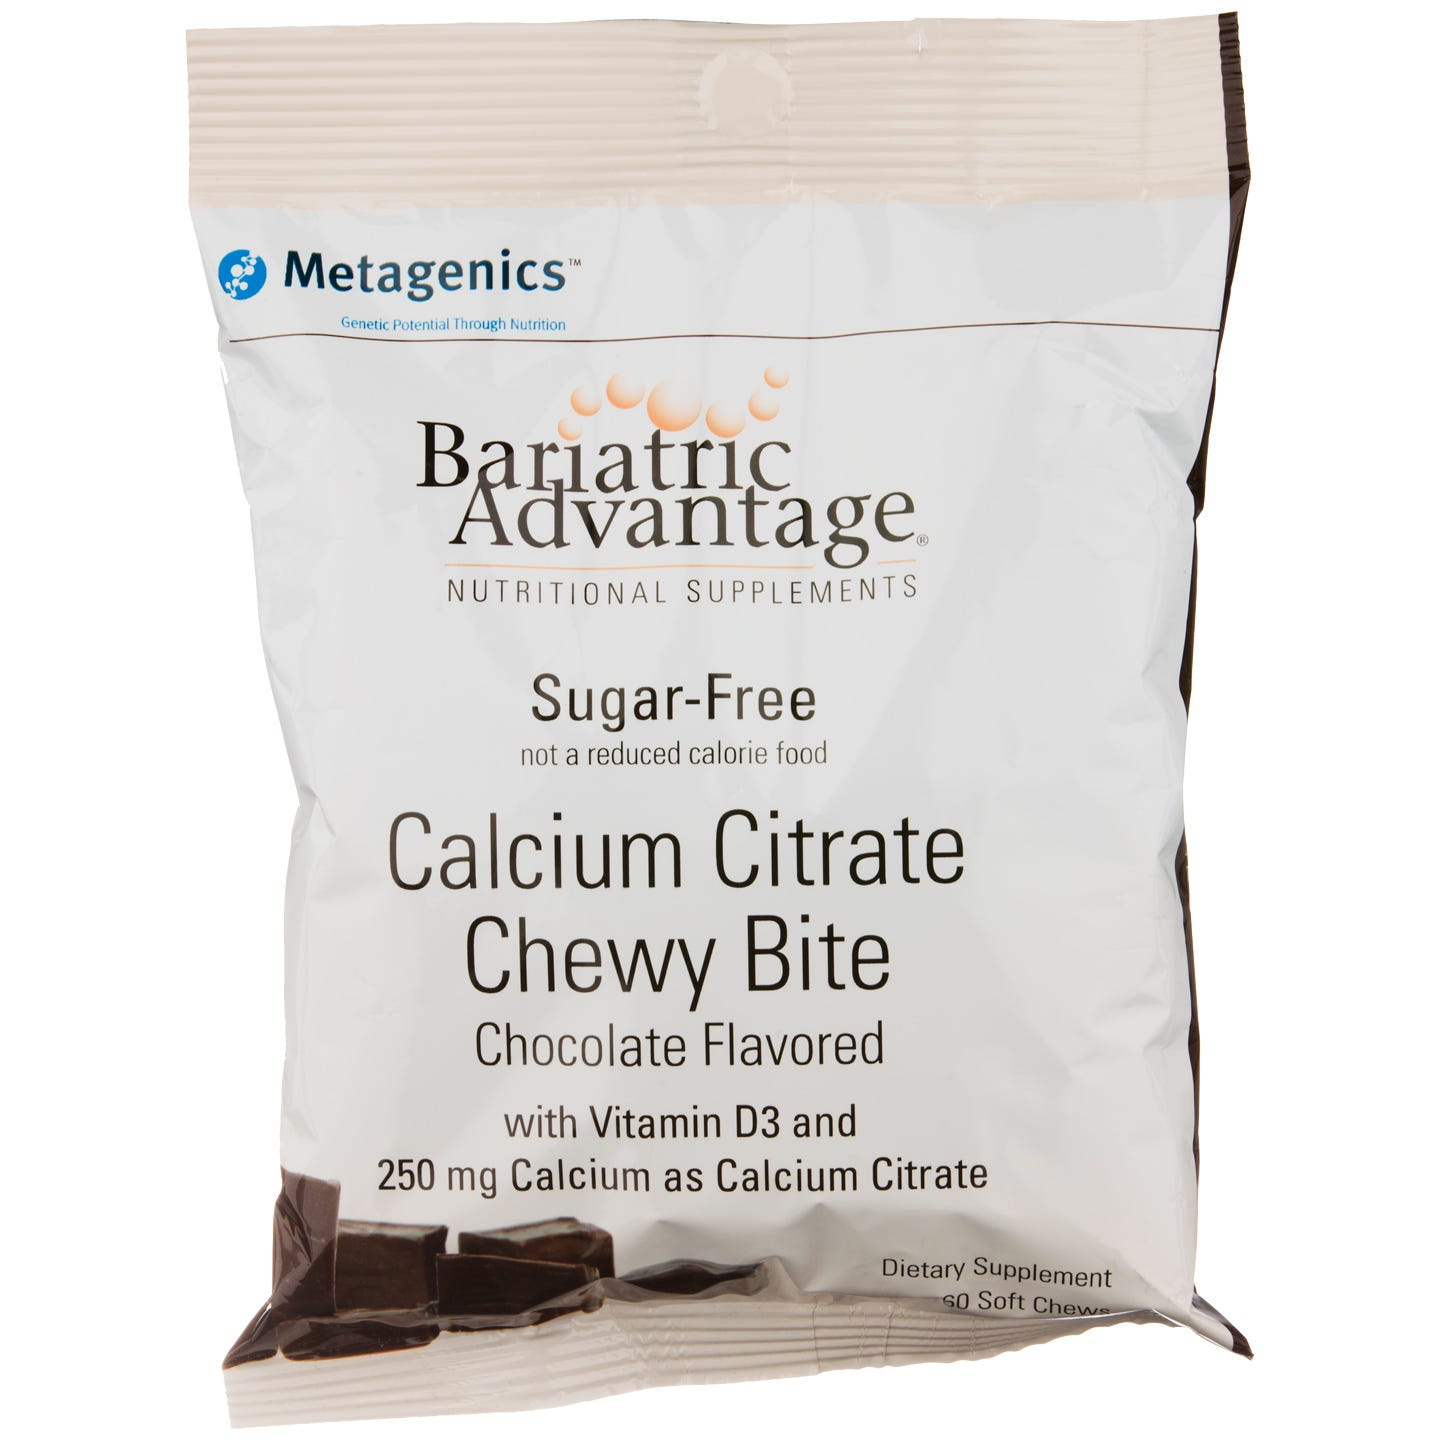 Calcium Citrate Chewy Bites Chocolate (60 ct) - Bariatric Advantage - Rapid Diet Weight Loss Products Shop